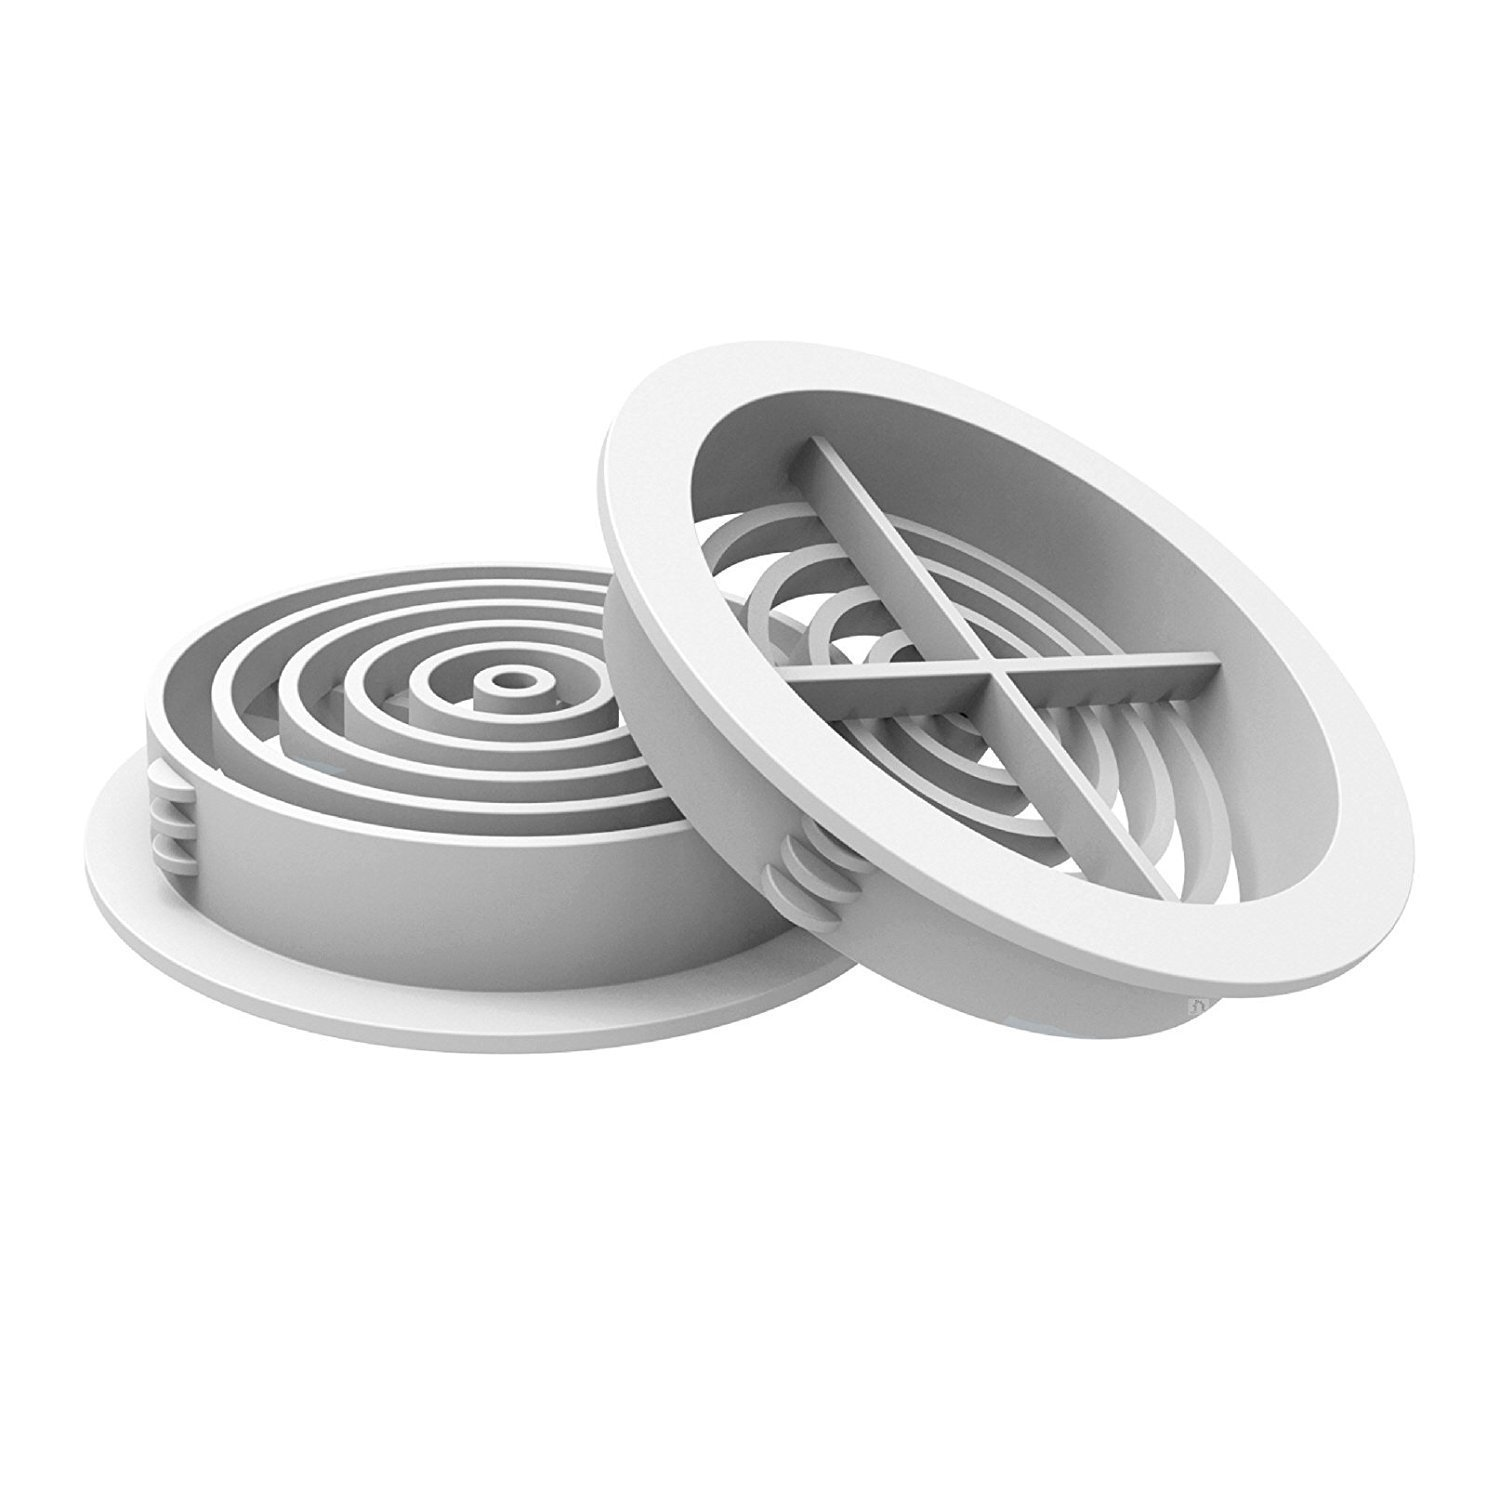 4 x 70mm White Plastic Round Soffit Air Vents/Upvc Push in Roof Disc/Fascia Manthorpe